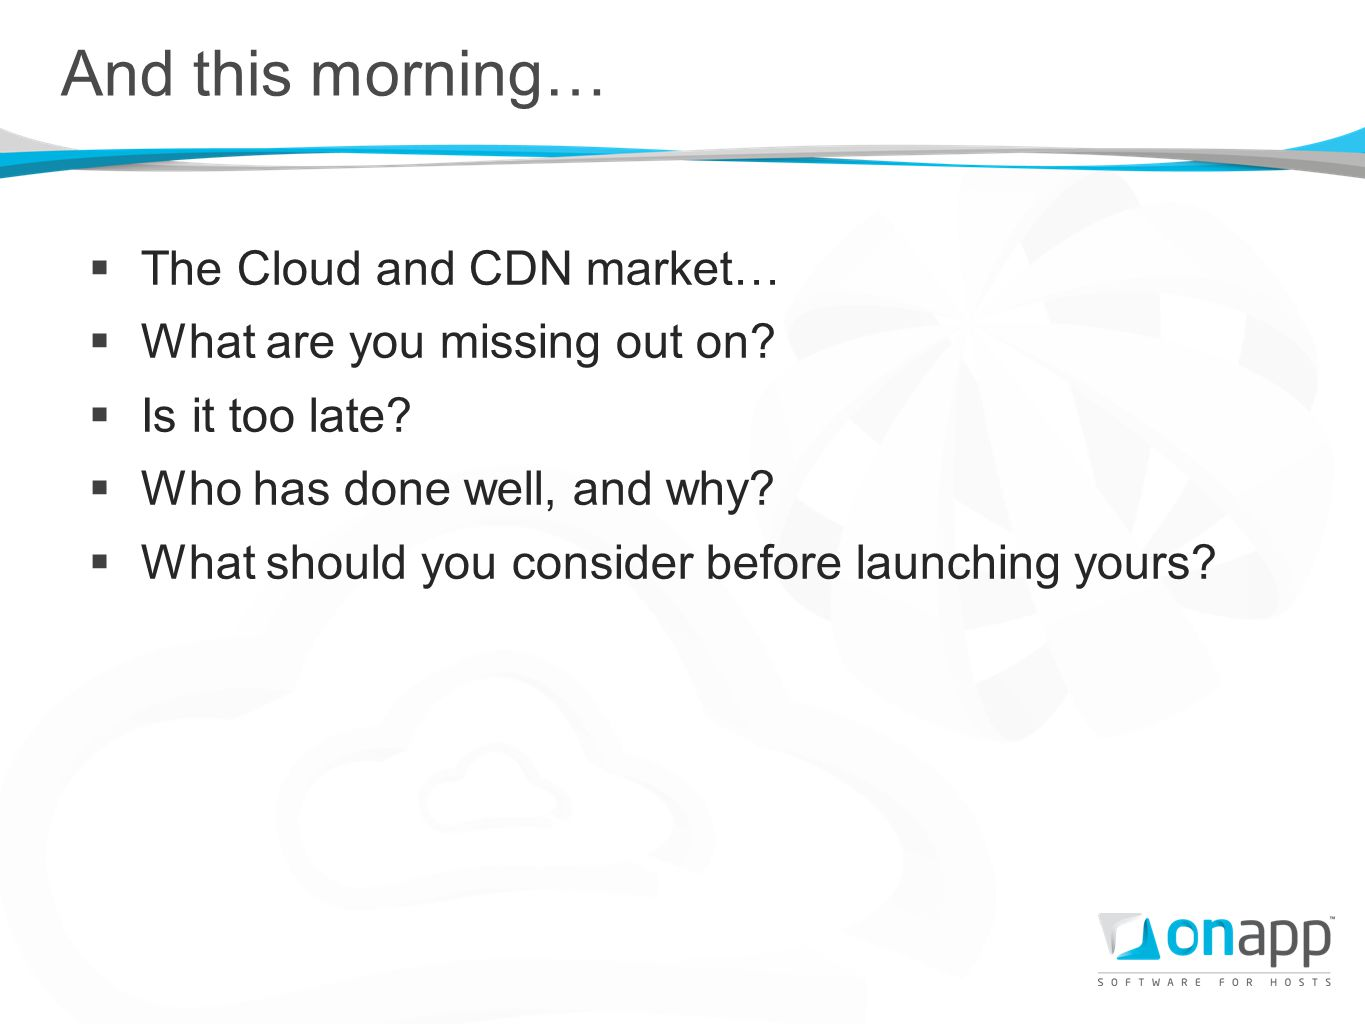 The Cloud and CDN market… What are you missing out on? Is it too late? Who has done well, and why? What should you consider before launching yours? An